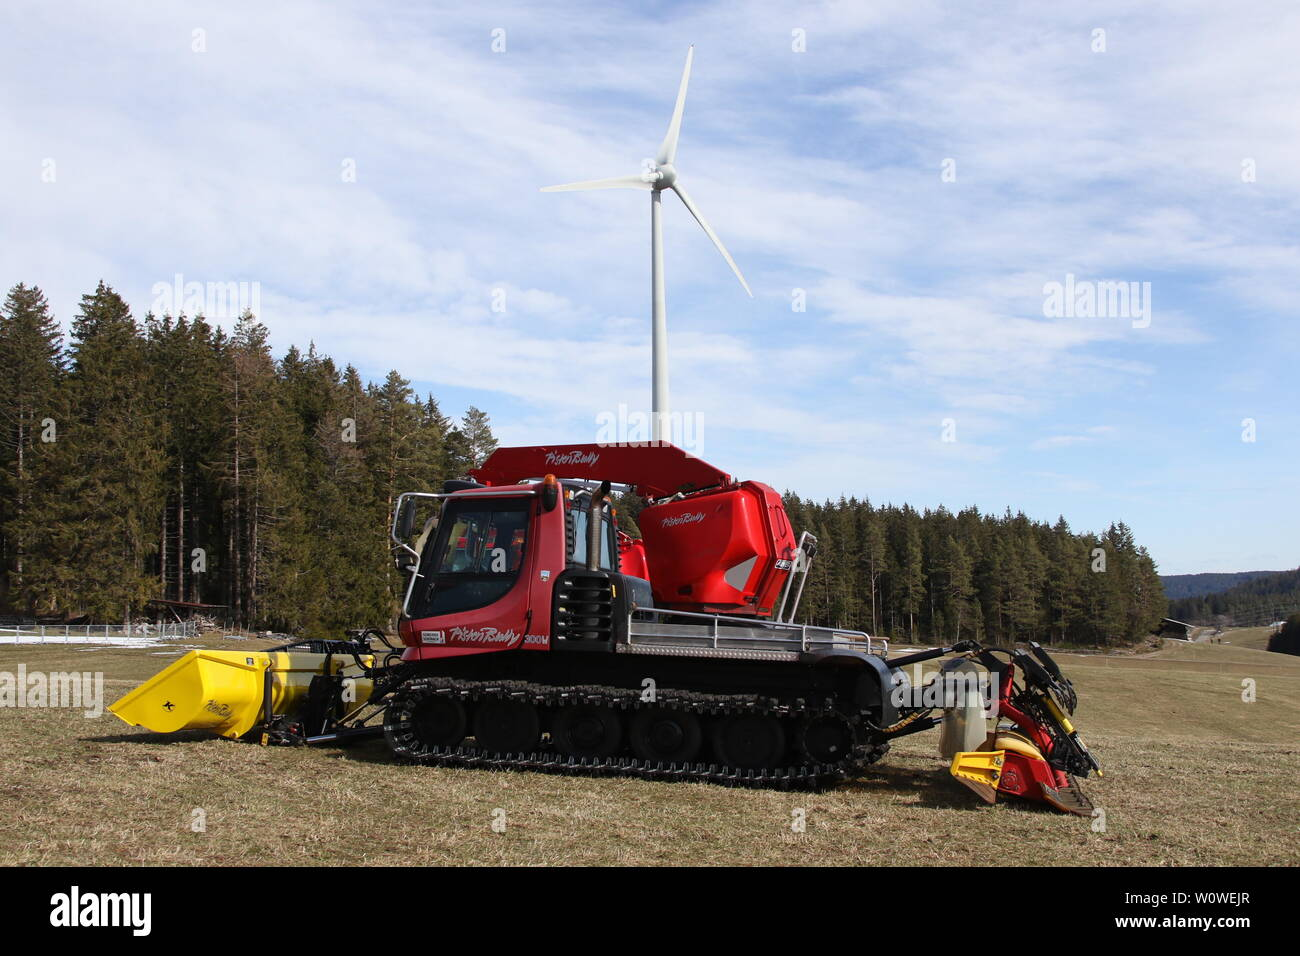 Pistenbully Stock Photos & Pistenbully Stock Images - Alamy